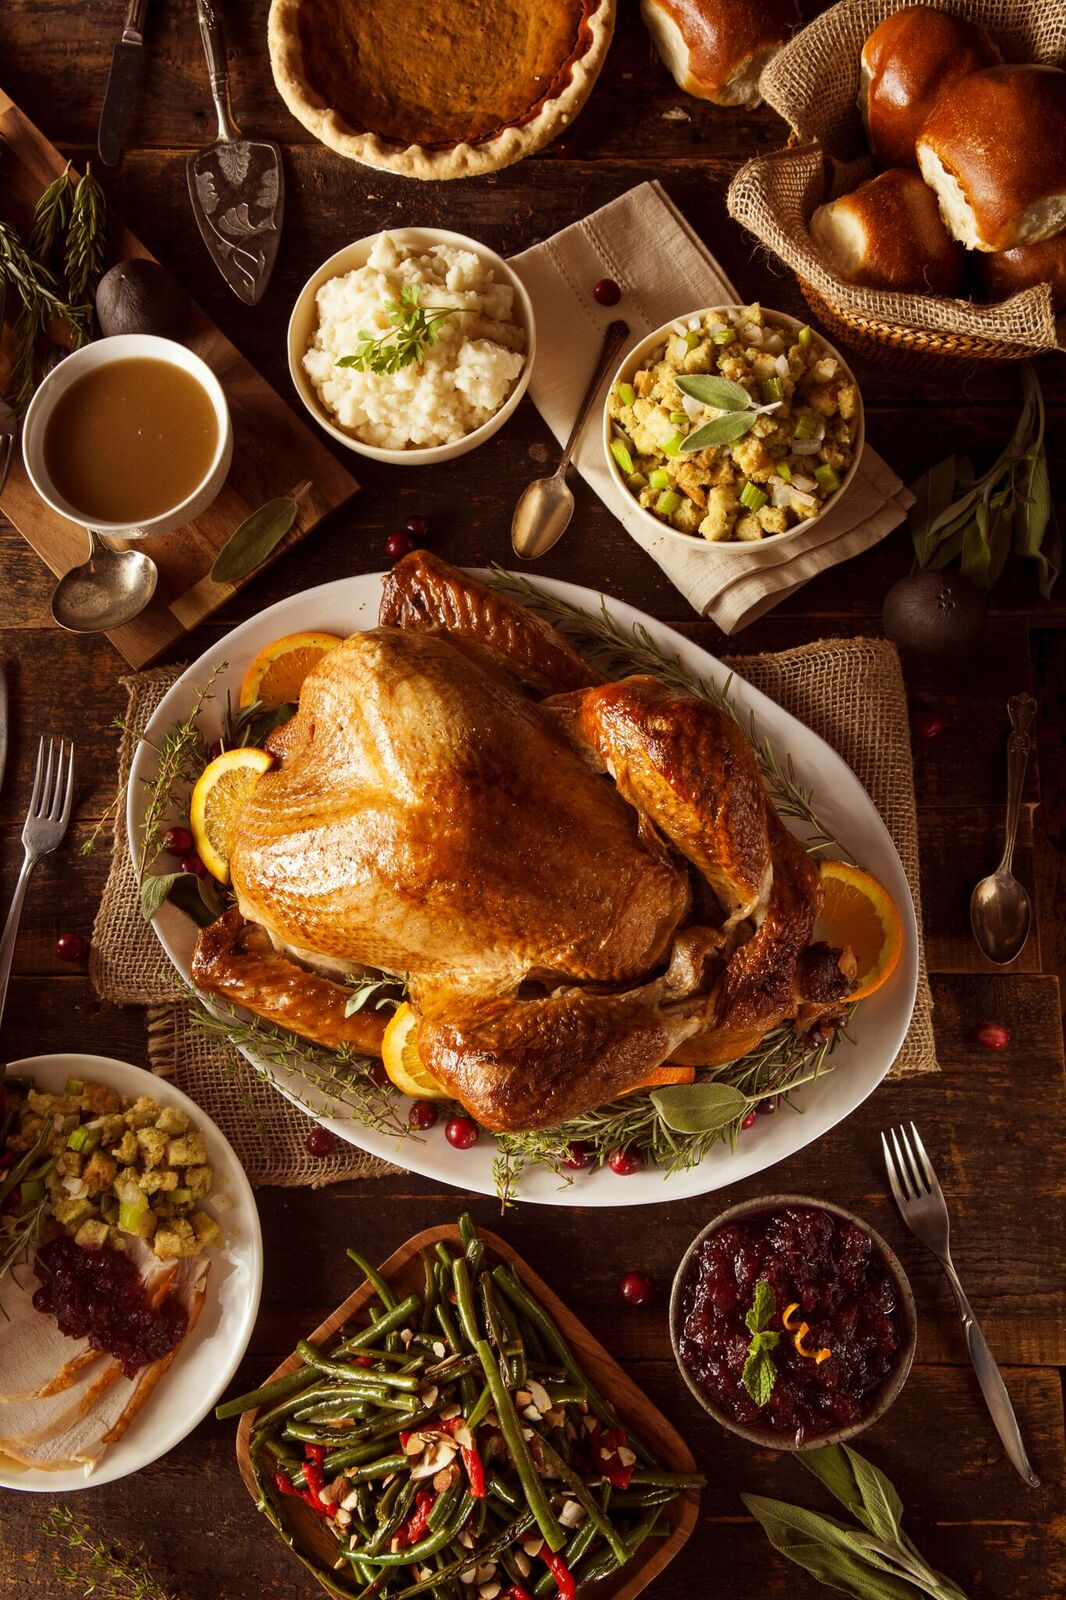 Hilton JBR Christmas Turkey